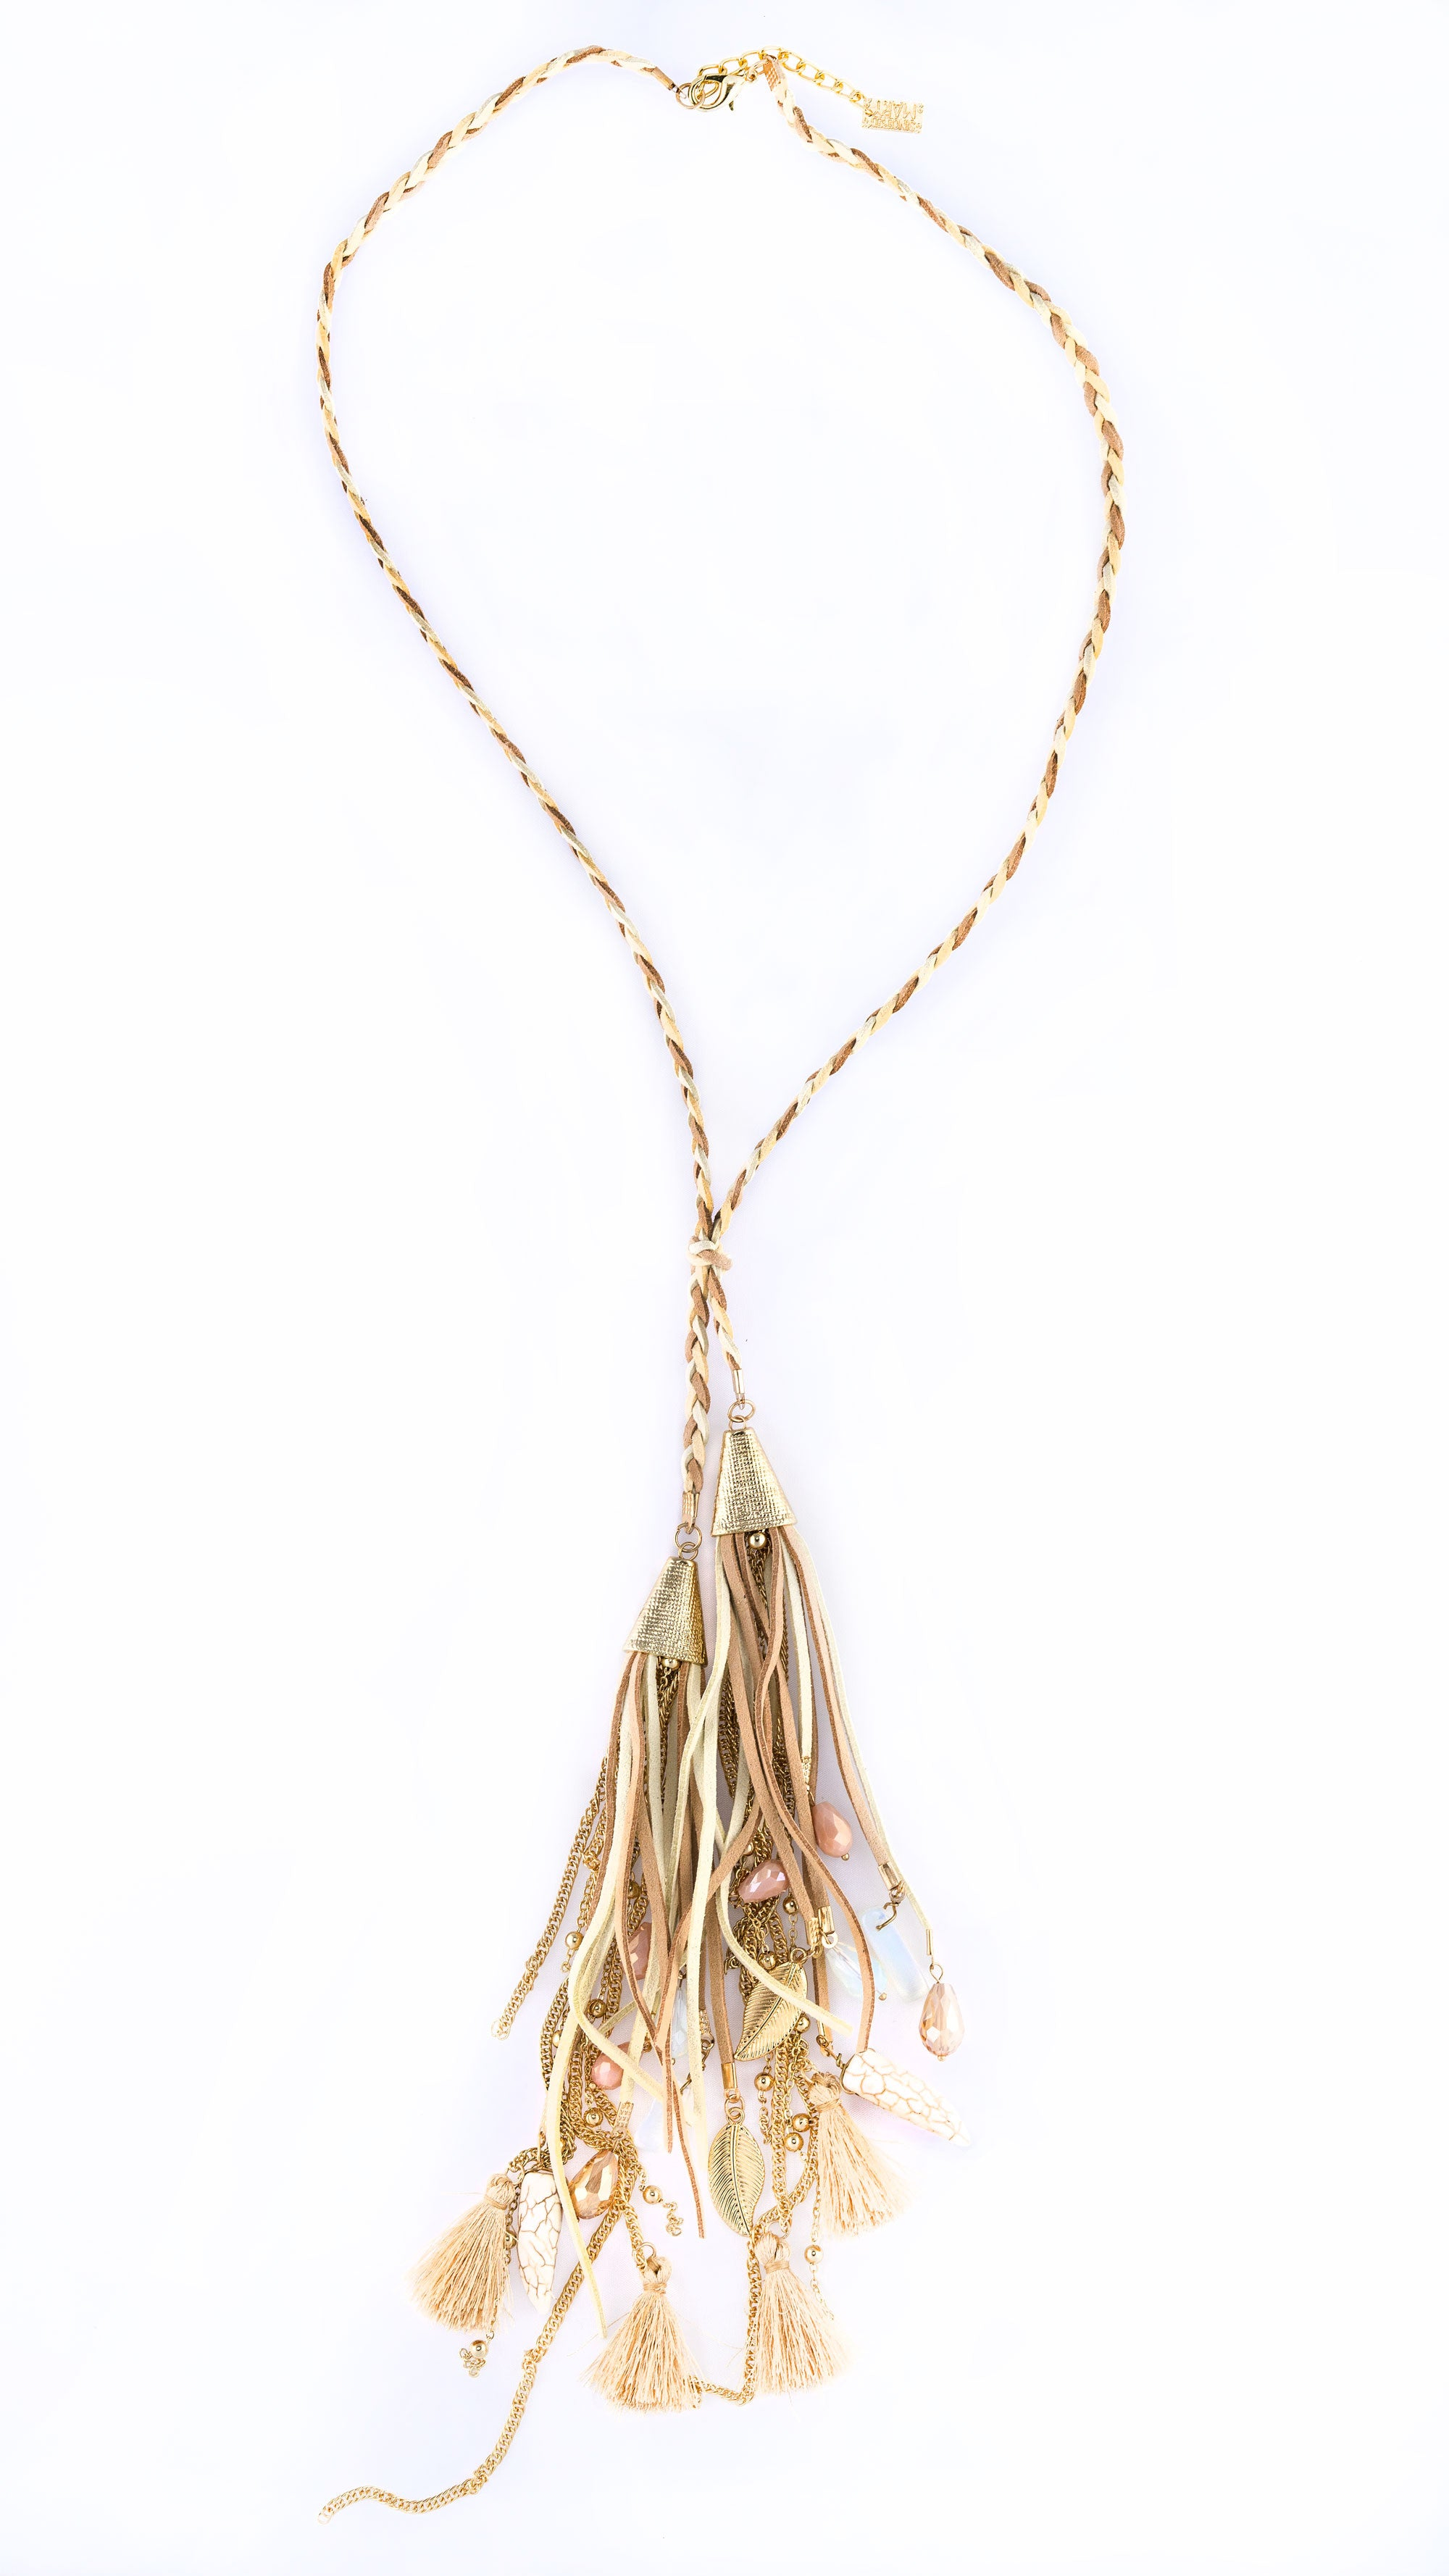 necklace benevolence tasselnk la tassel done products